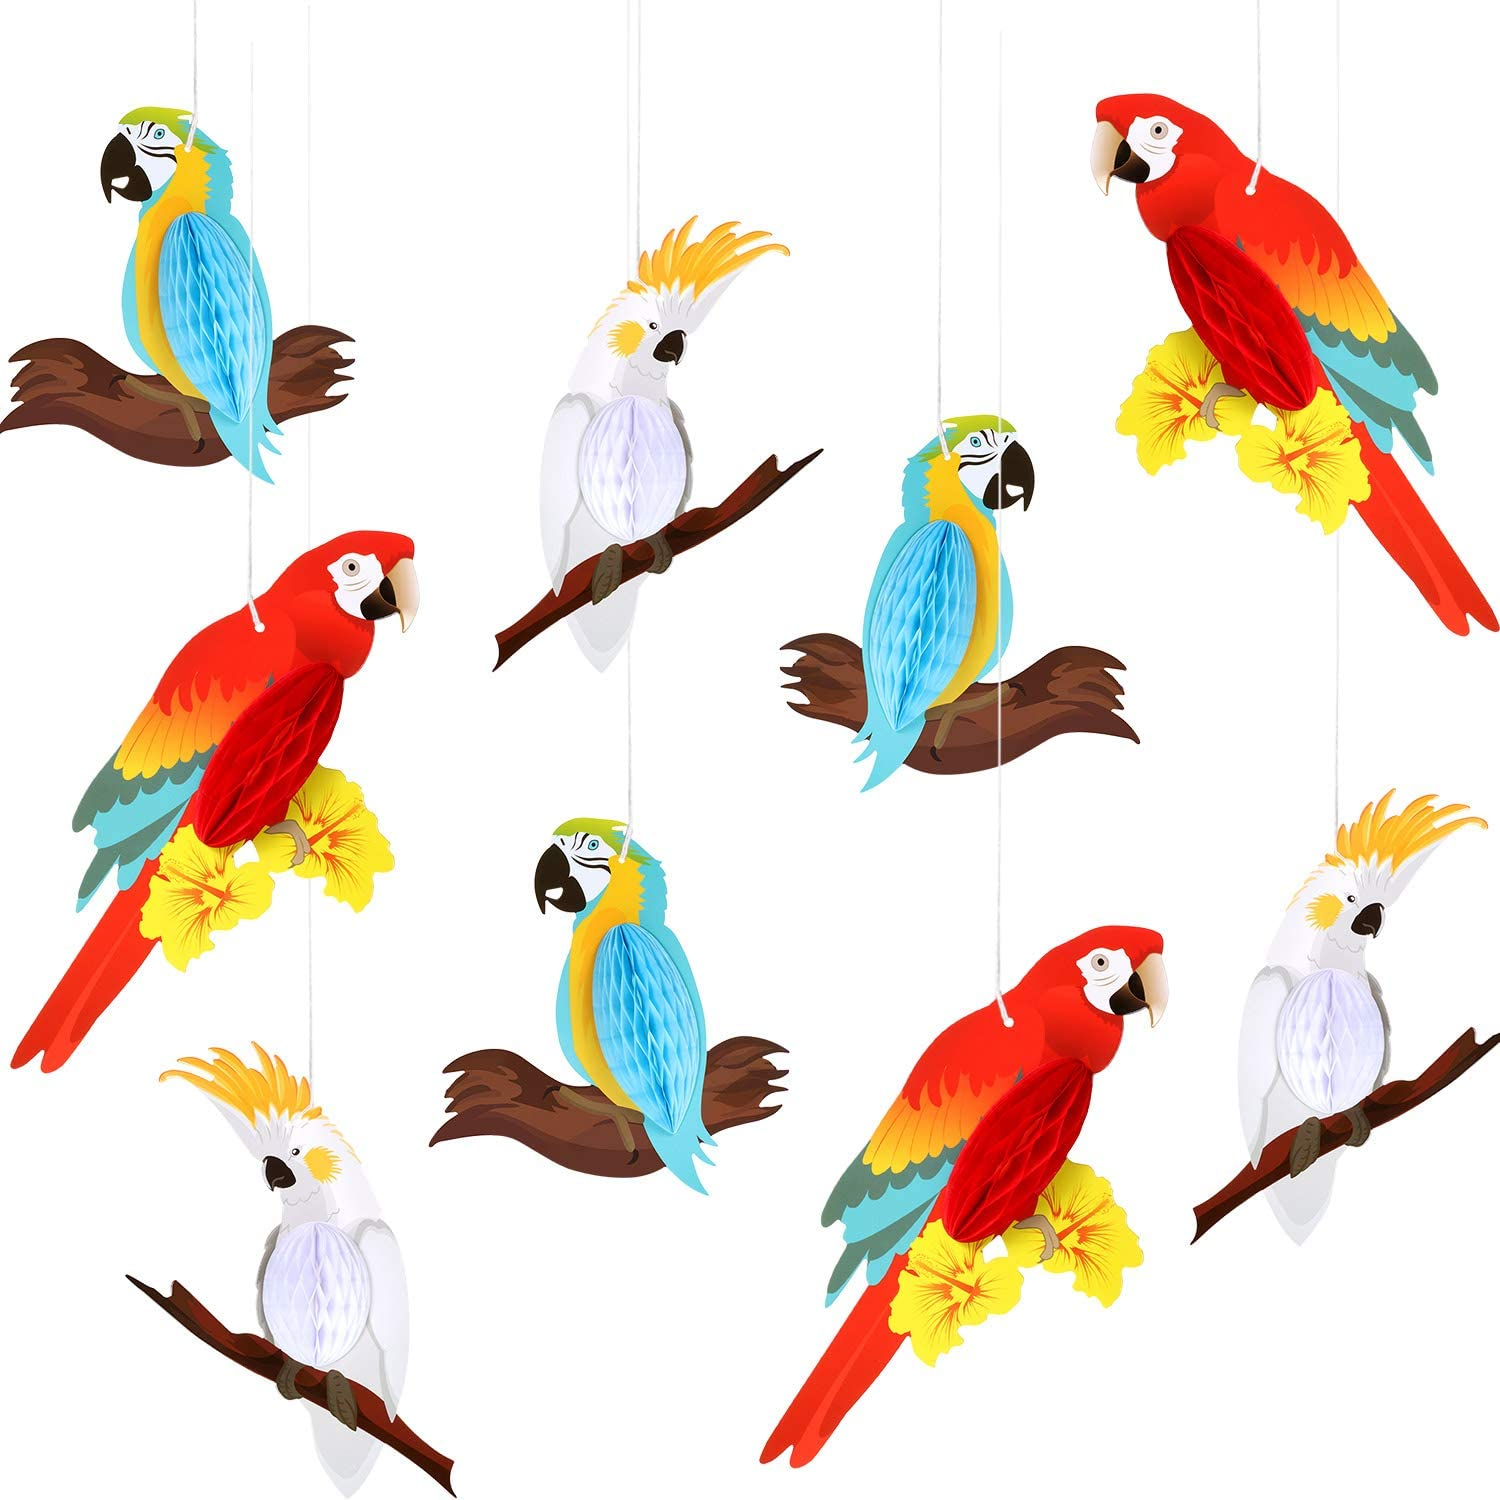 9 Pieces Luau Tropical Birds Parrot Honeycomb Party Paper Honeycombs Hawaiian Summer Party Hanging Decorations Beach Wedding Birthday Favor